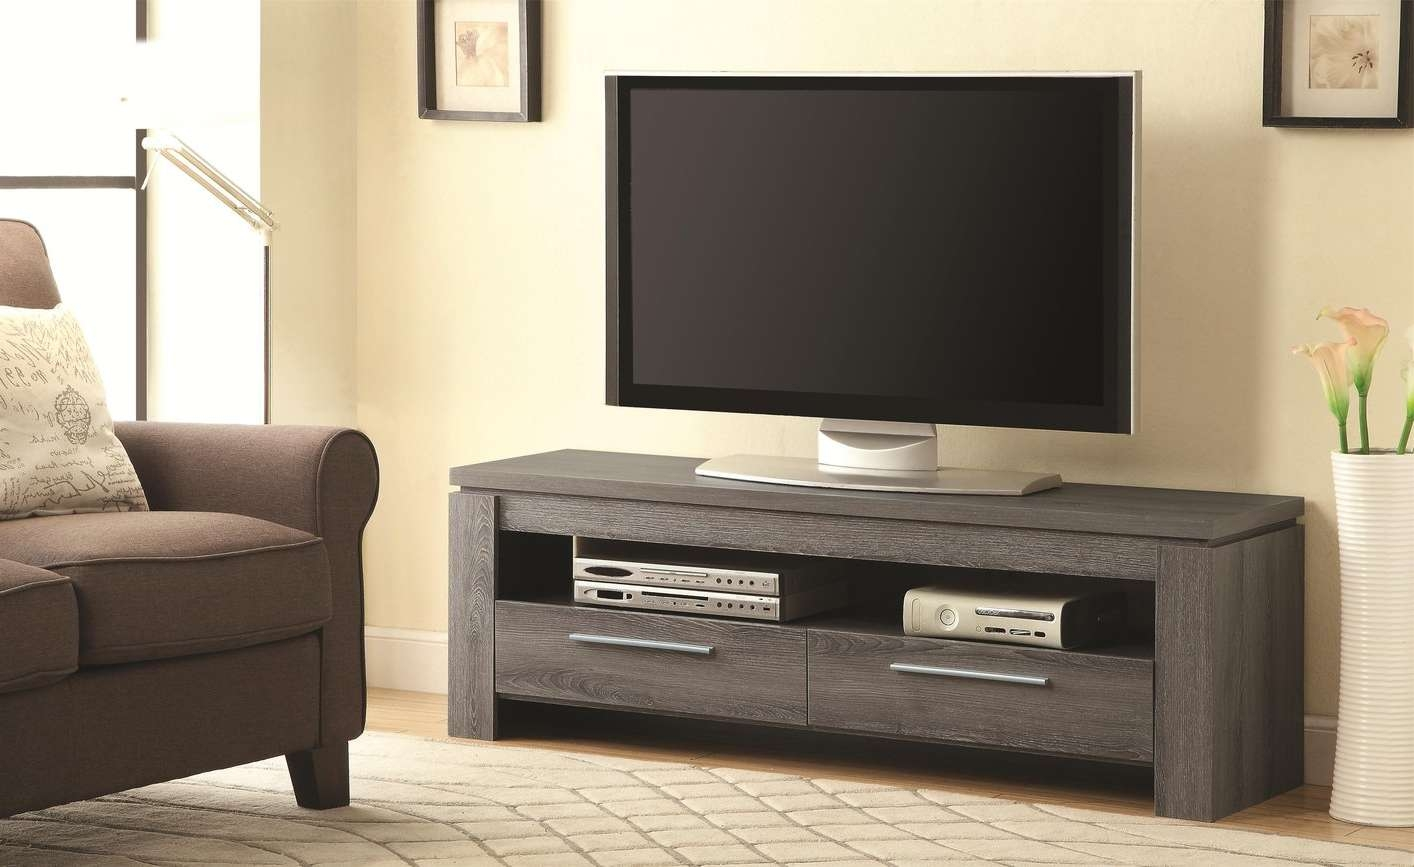 Grey Wood Tv Stand – Steal A Sofa Furniture Outlet Los Angeles Ca For Grey Tv Stands (View 8 of 15)